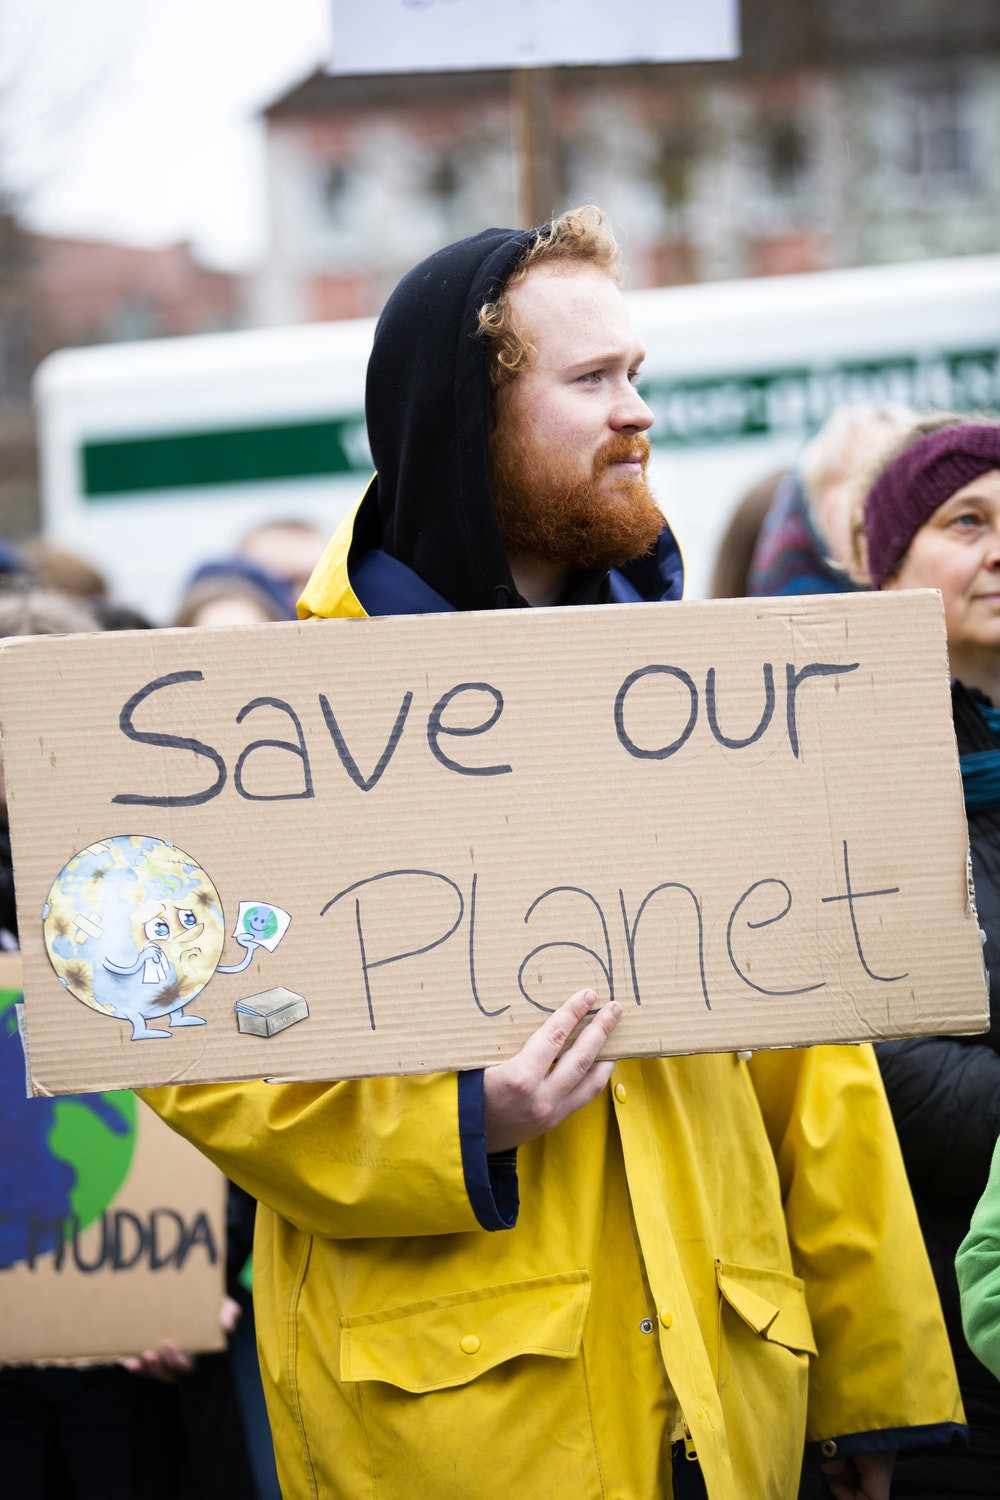 Climate Change: Scare Tactics Vs Reactionary Politics Means We All Lose